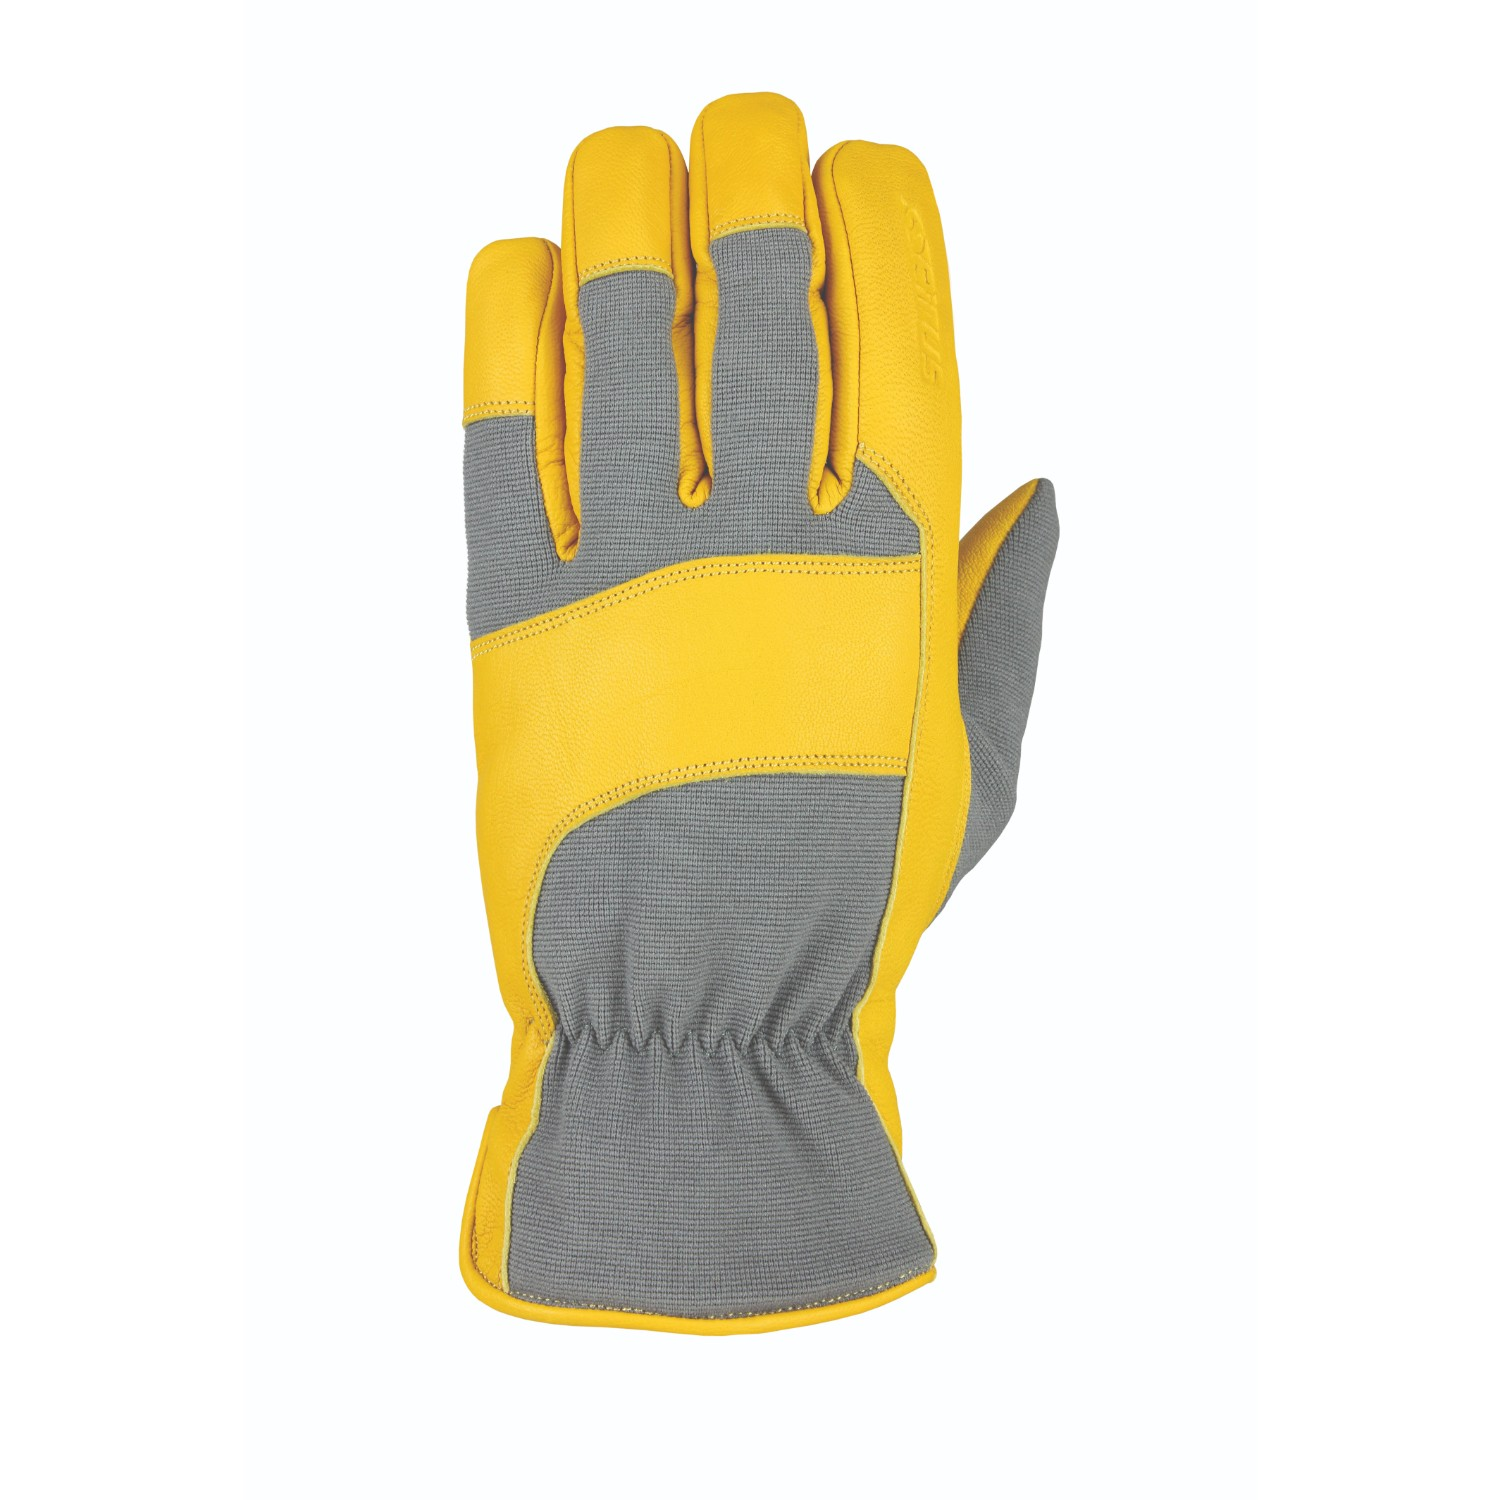 Heatwave Leather Glove Gray Tan Goatskin S